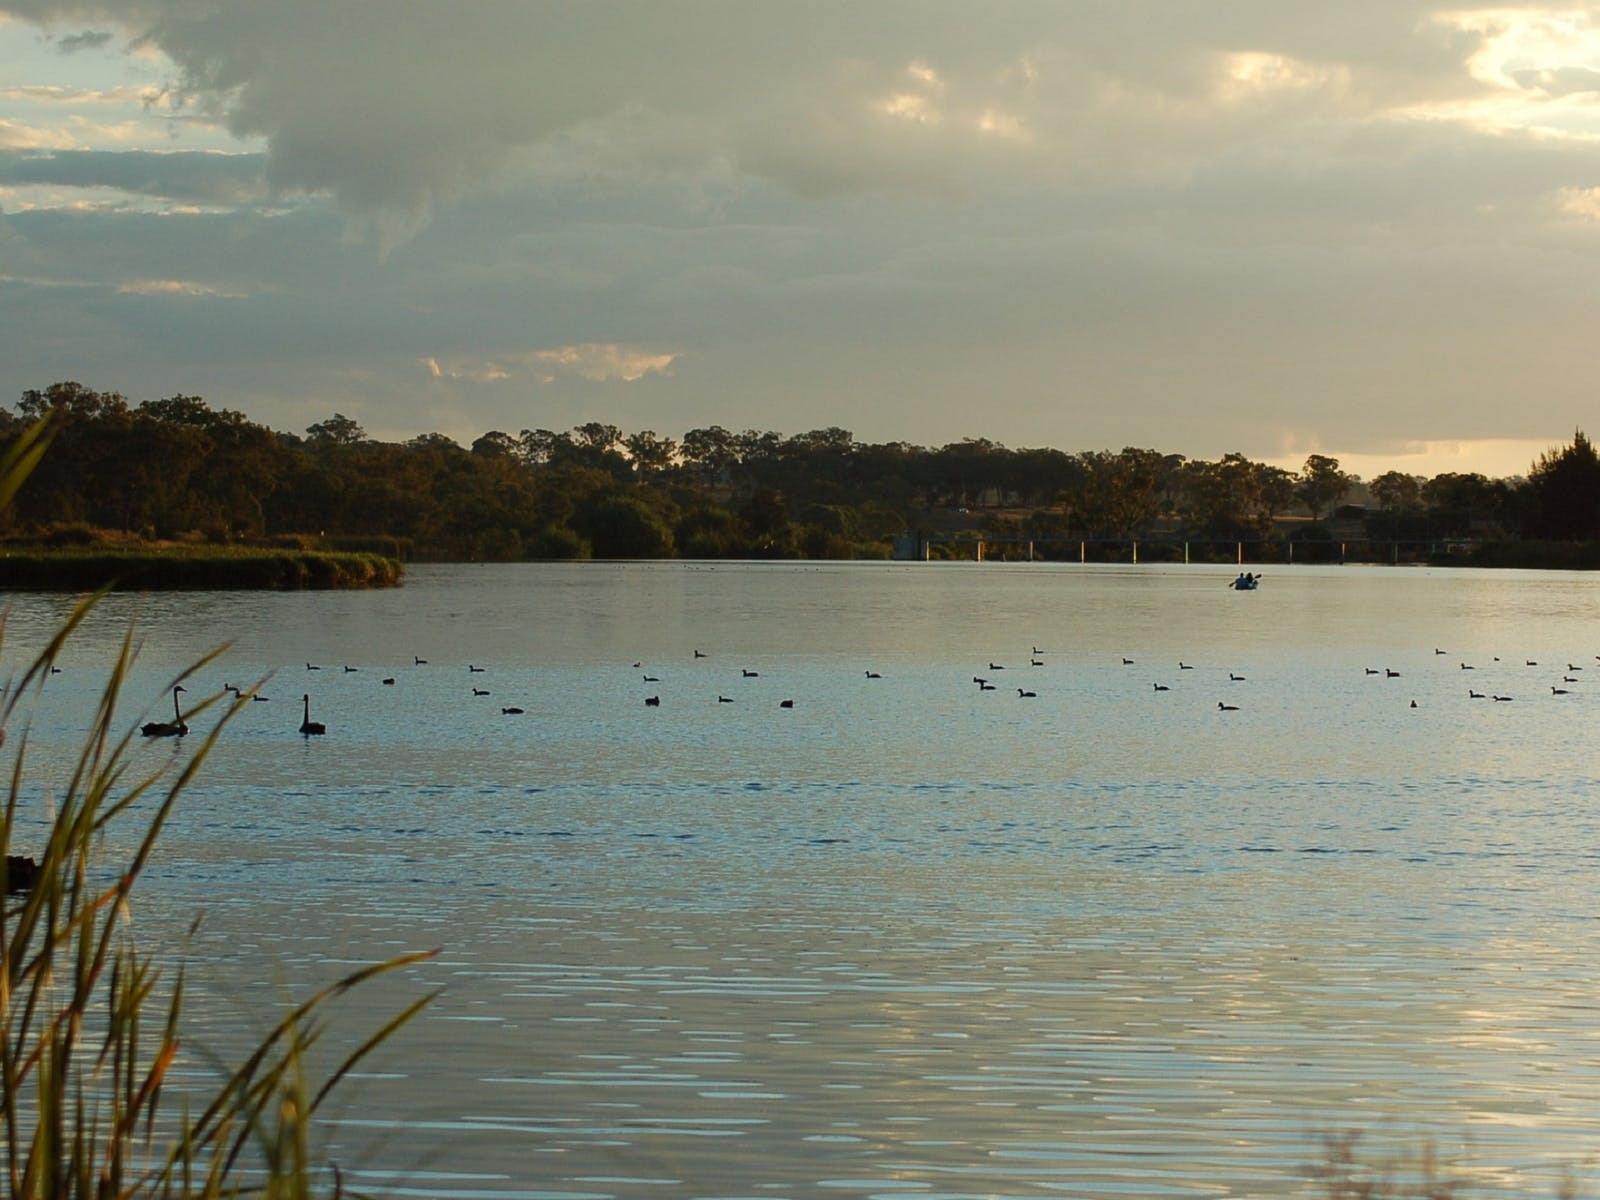 Group of Black Swans with Kayakers behind them on Lake Inverell